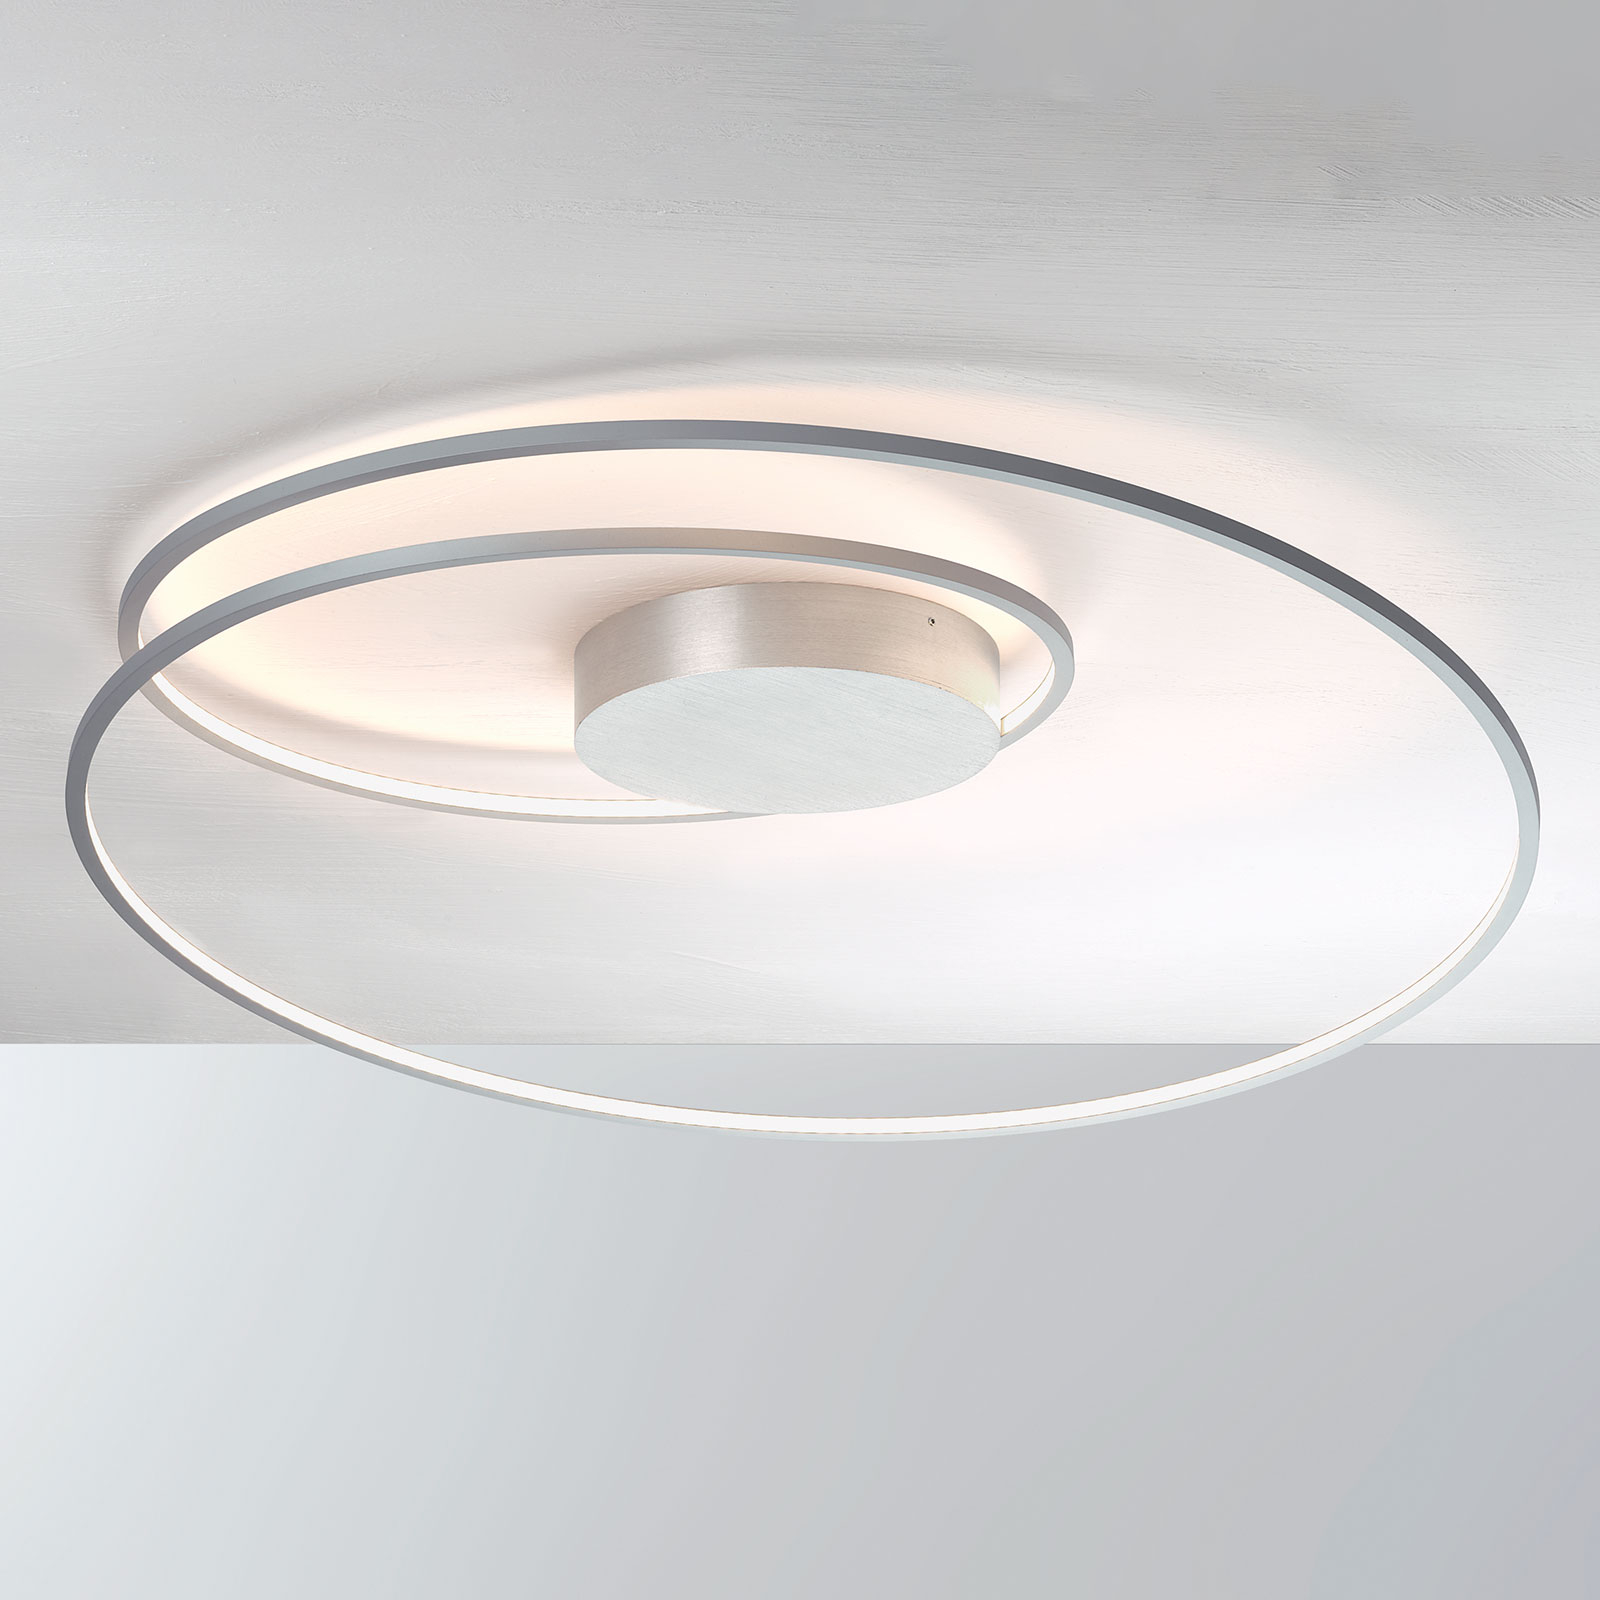 At - a powerful LED ceiling light_1556124_1